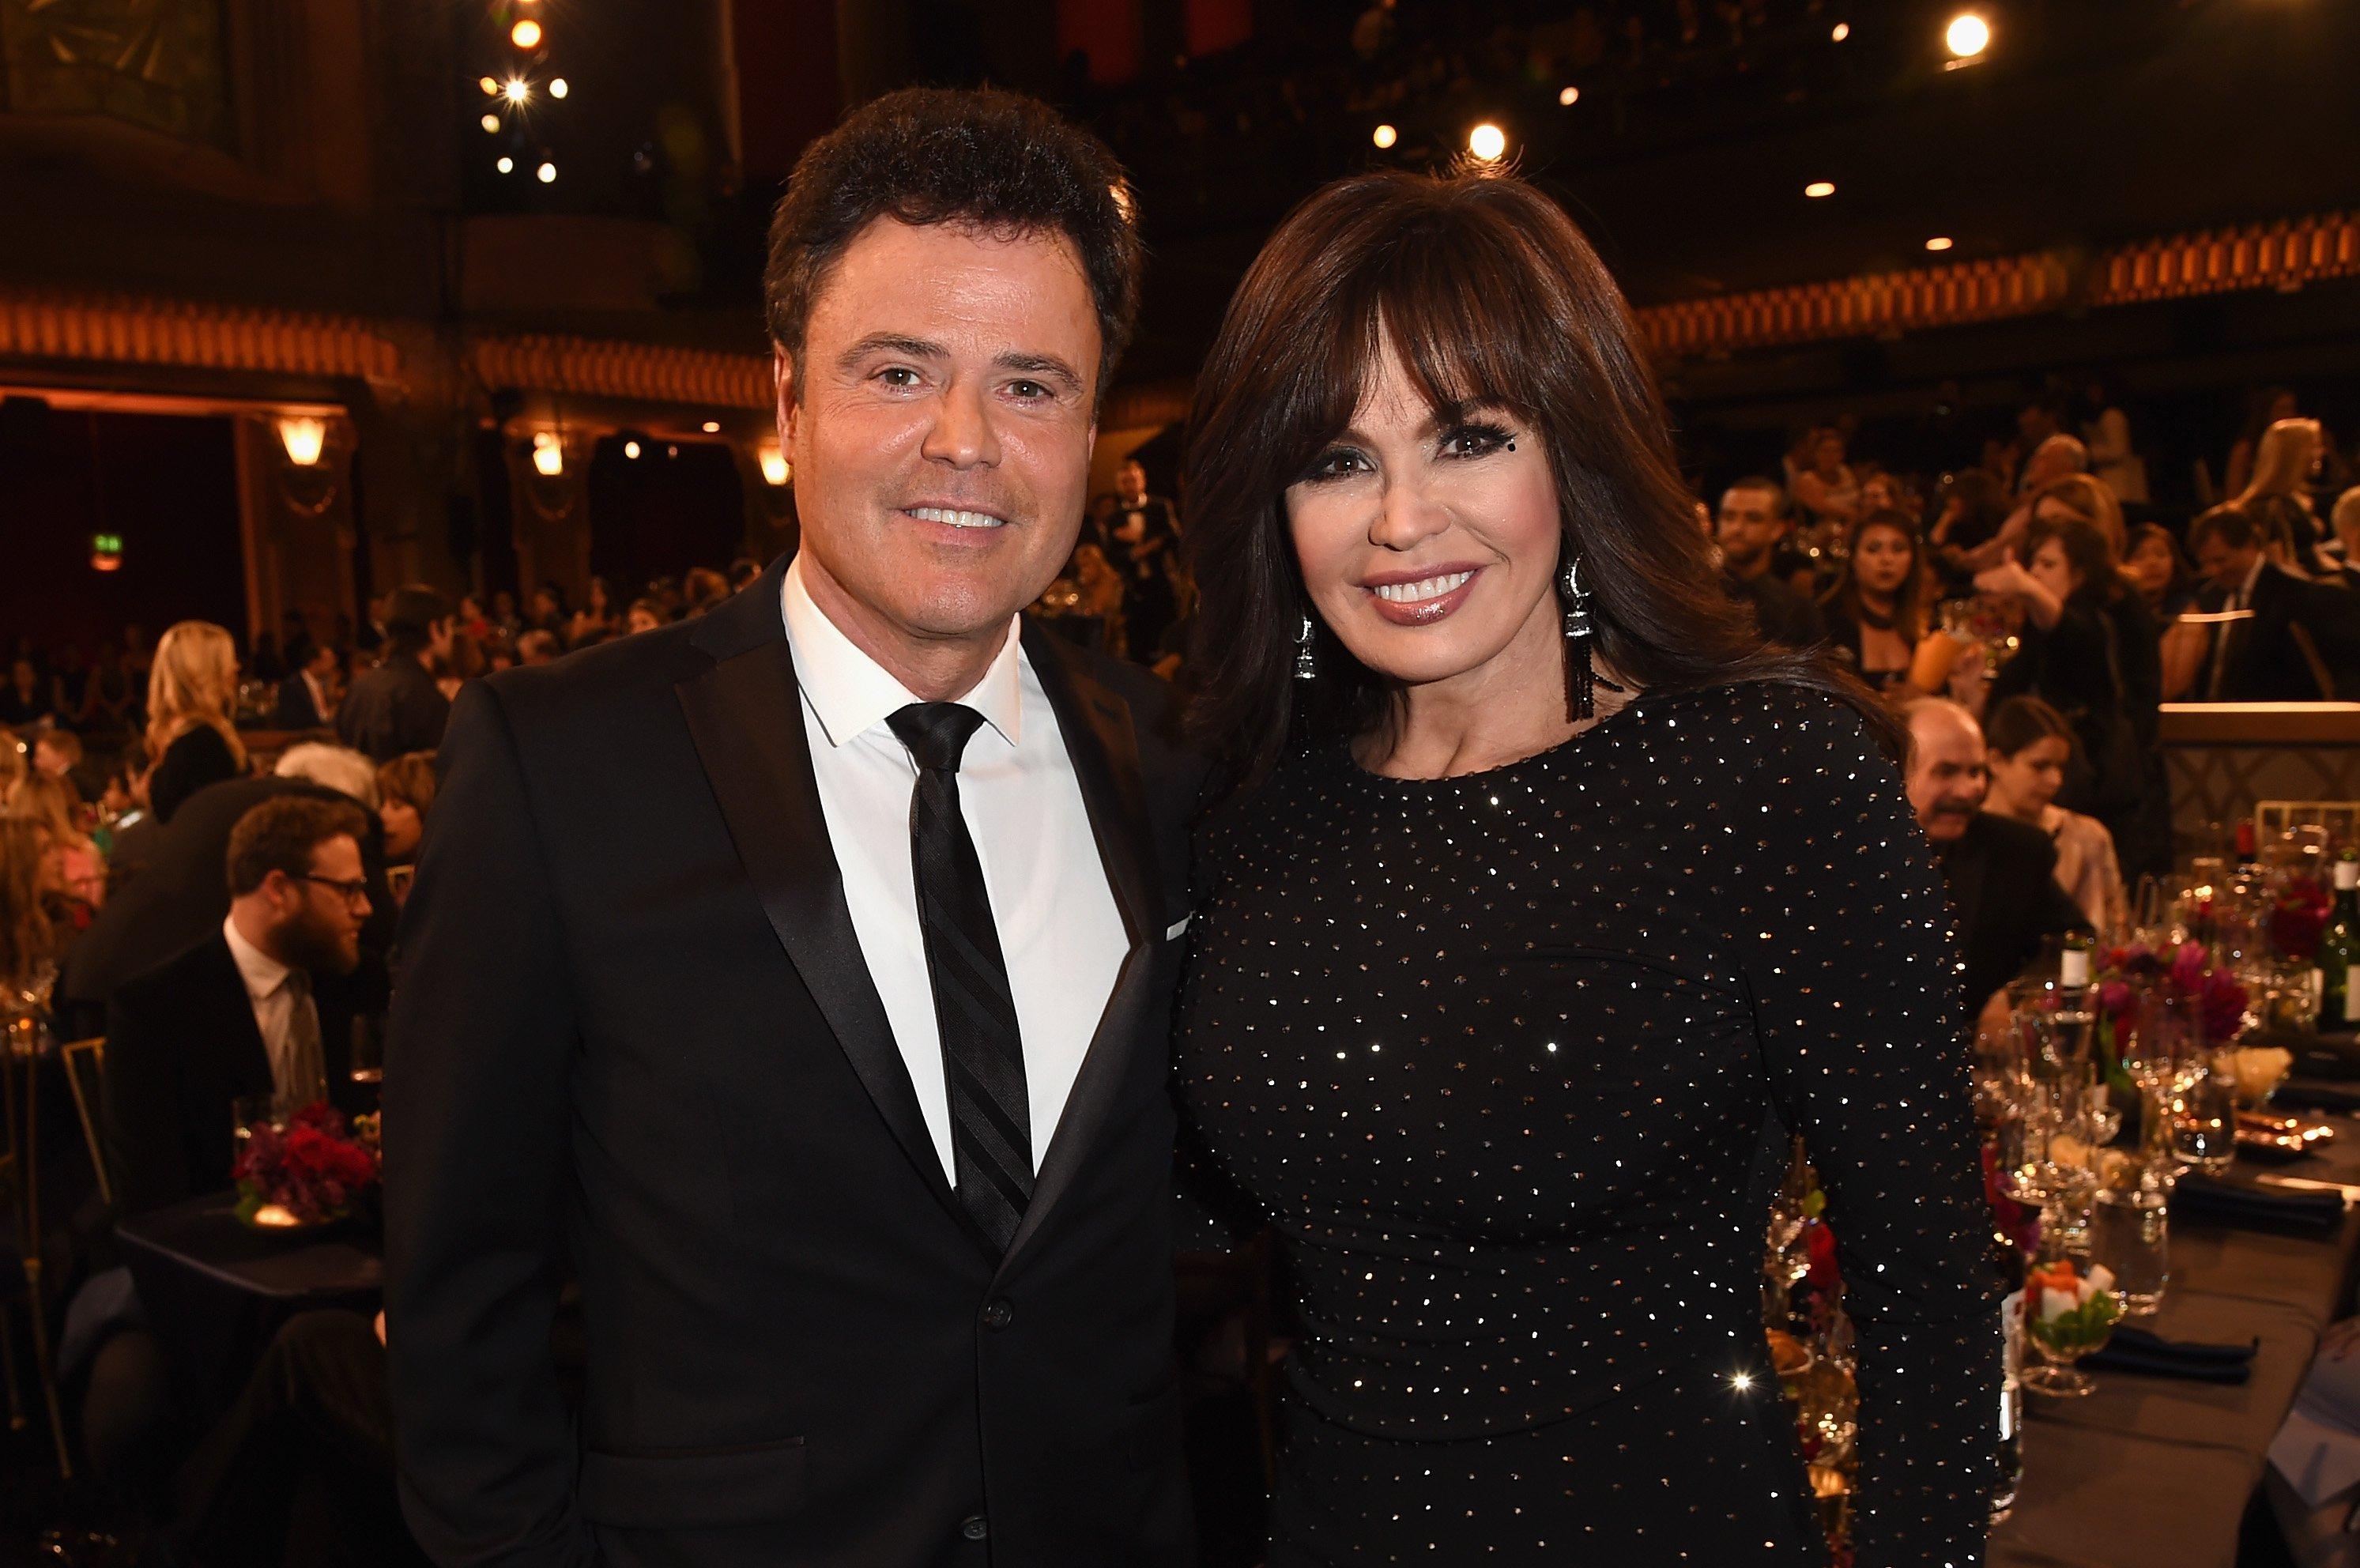 Image Credits: Getty Images / Jason Merritt | Singers Donny Osmond (L) and Marie Osmond attend the 2015 TV Land Awards at Saban Theatre on April 11, 2015 in Beverly Hills, California.